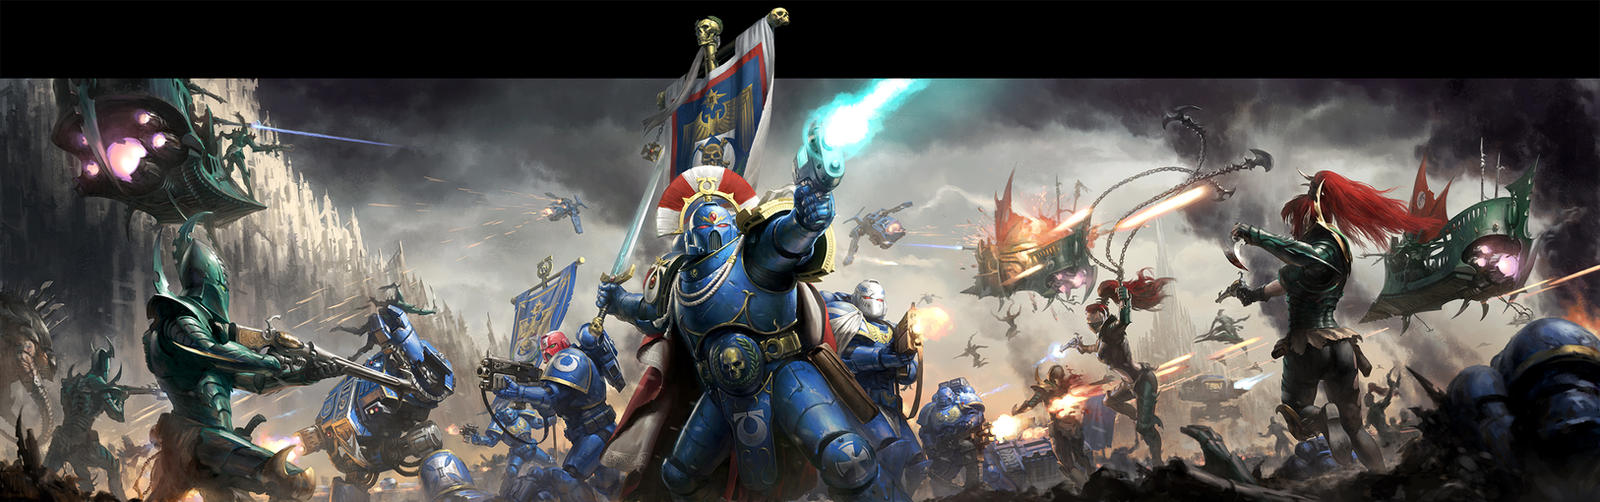 Warhammer 40K: Conquest Box Art